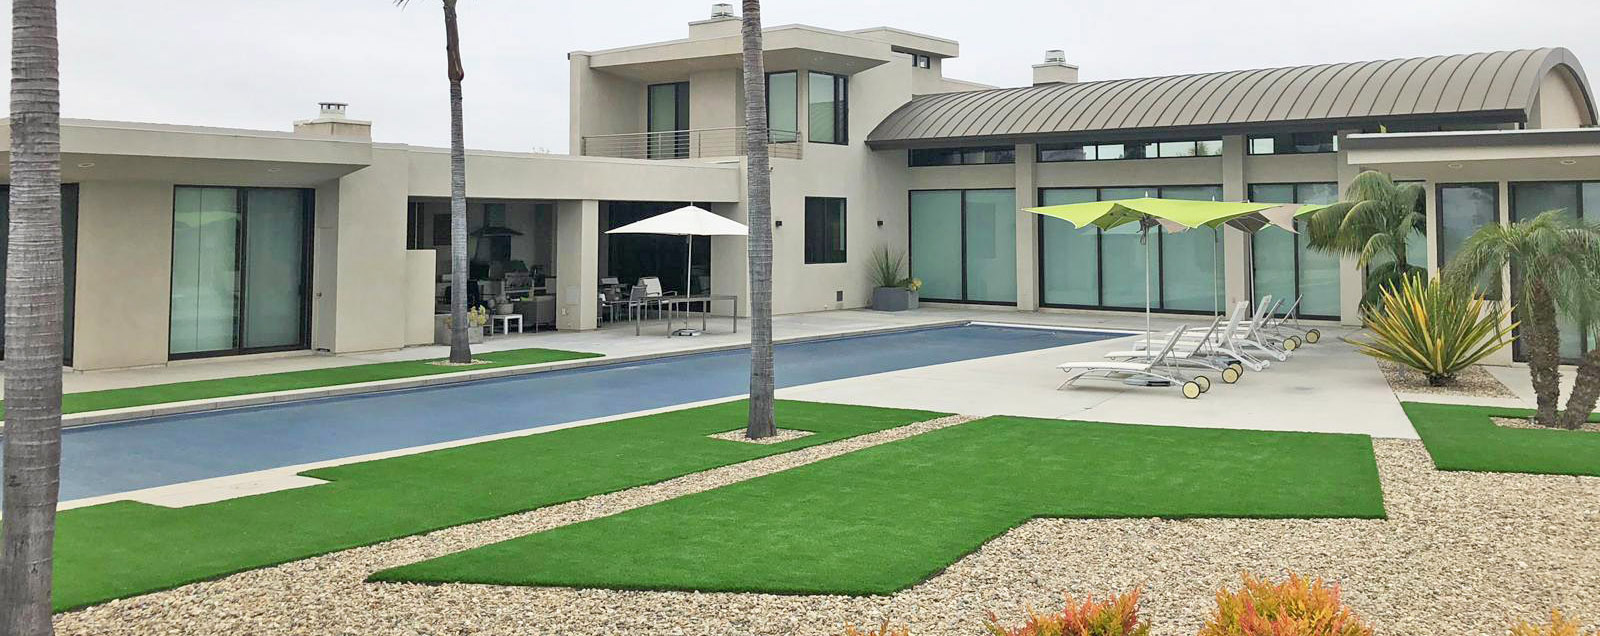 Artificial Grass in california